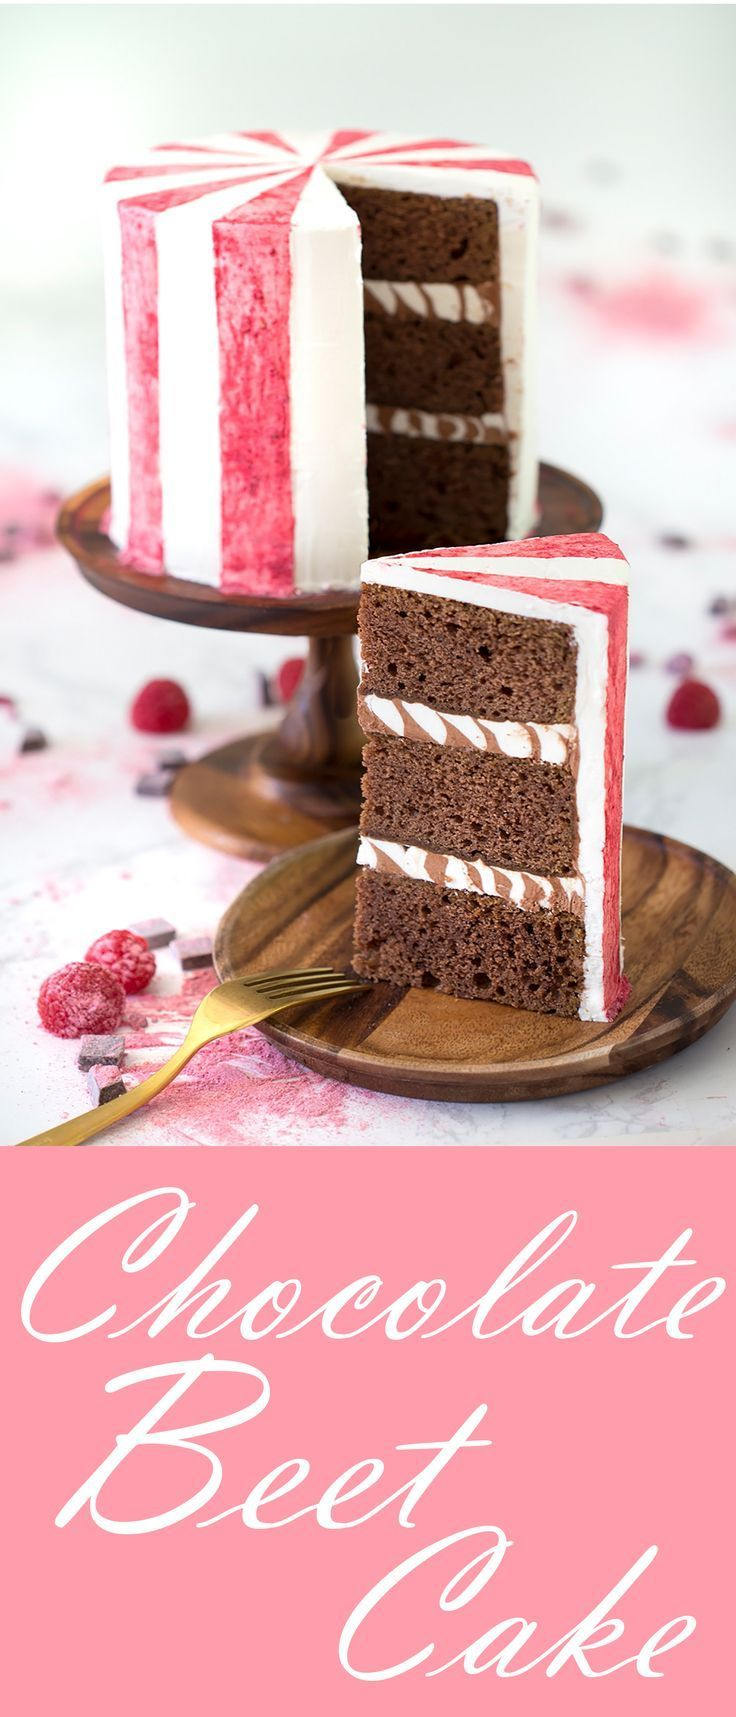 Chocolate cake made with beets the beets add color and